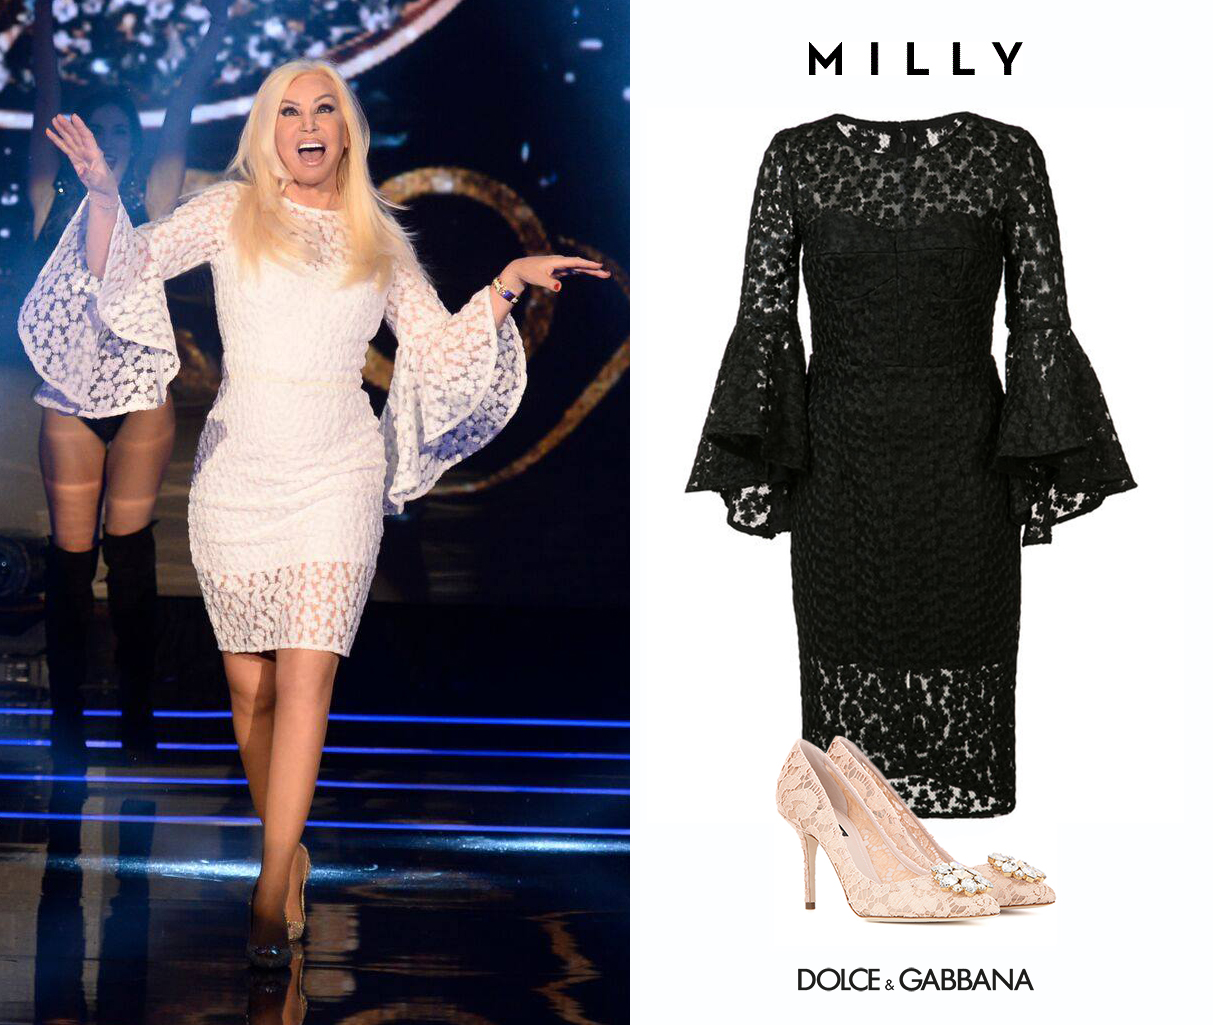 Susana_Gimenez_2017_Programa_Vestido_Blanco_Milly_Encaje_Anya_Lace_Dress_White_Dolce_Gabbana_Belucci_Embellished_Shoes_Zapatos_Looks.jpg